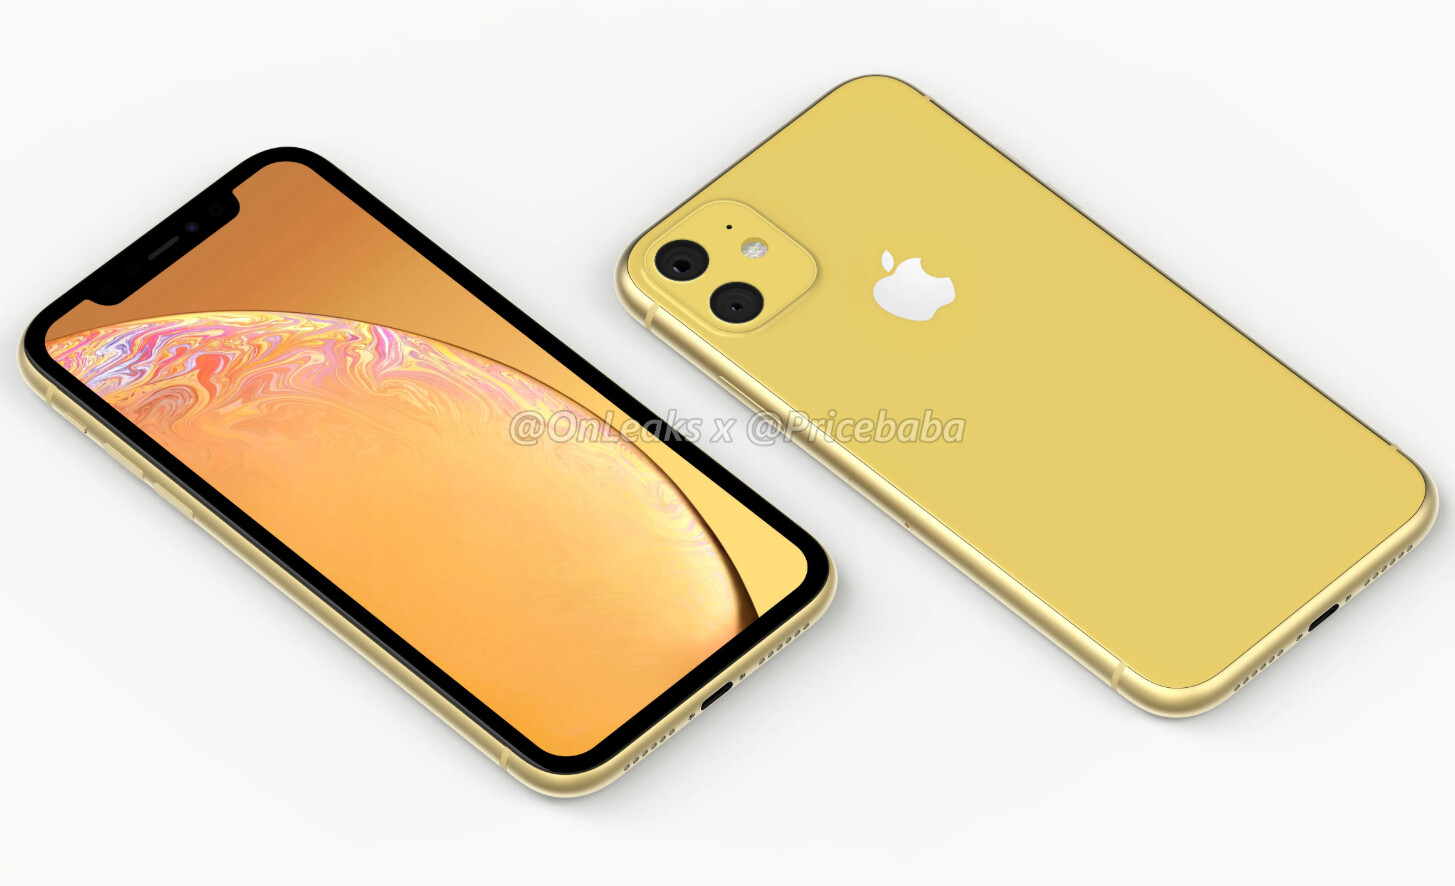 2019 iPhone XR to come with dual rear camera setup